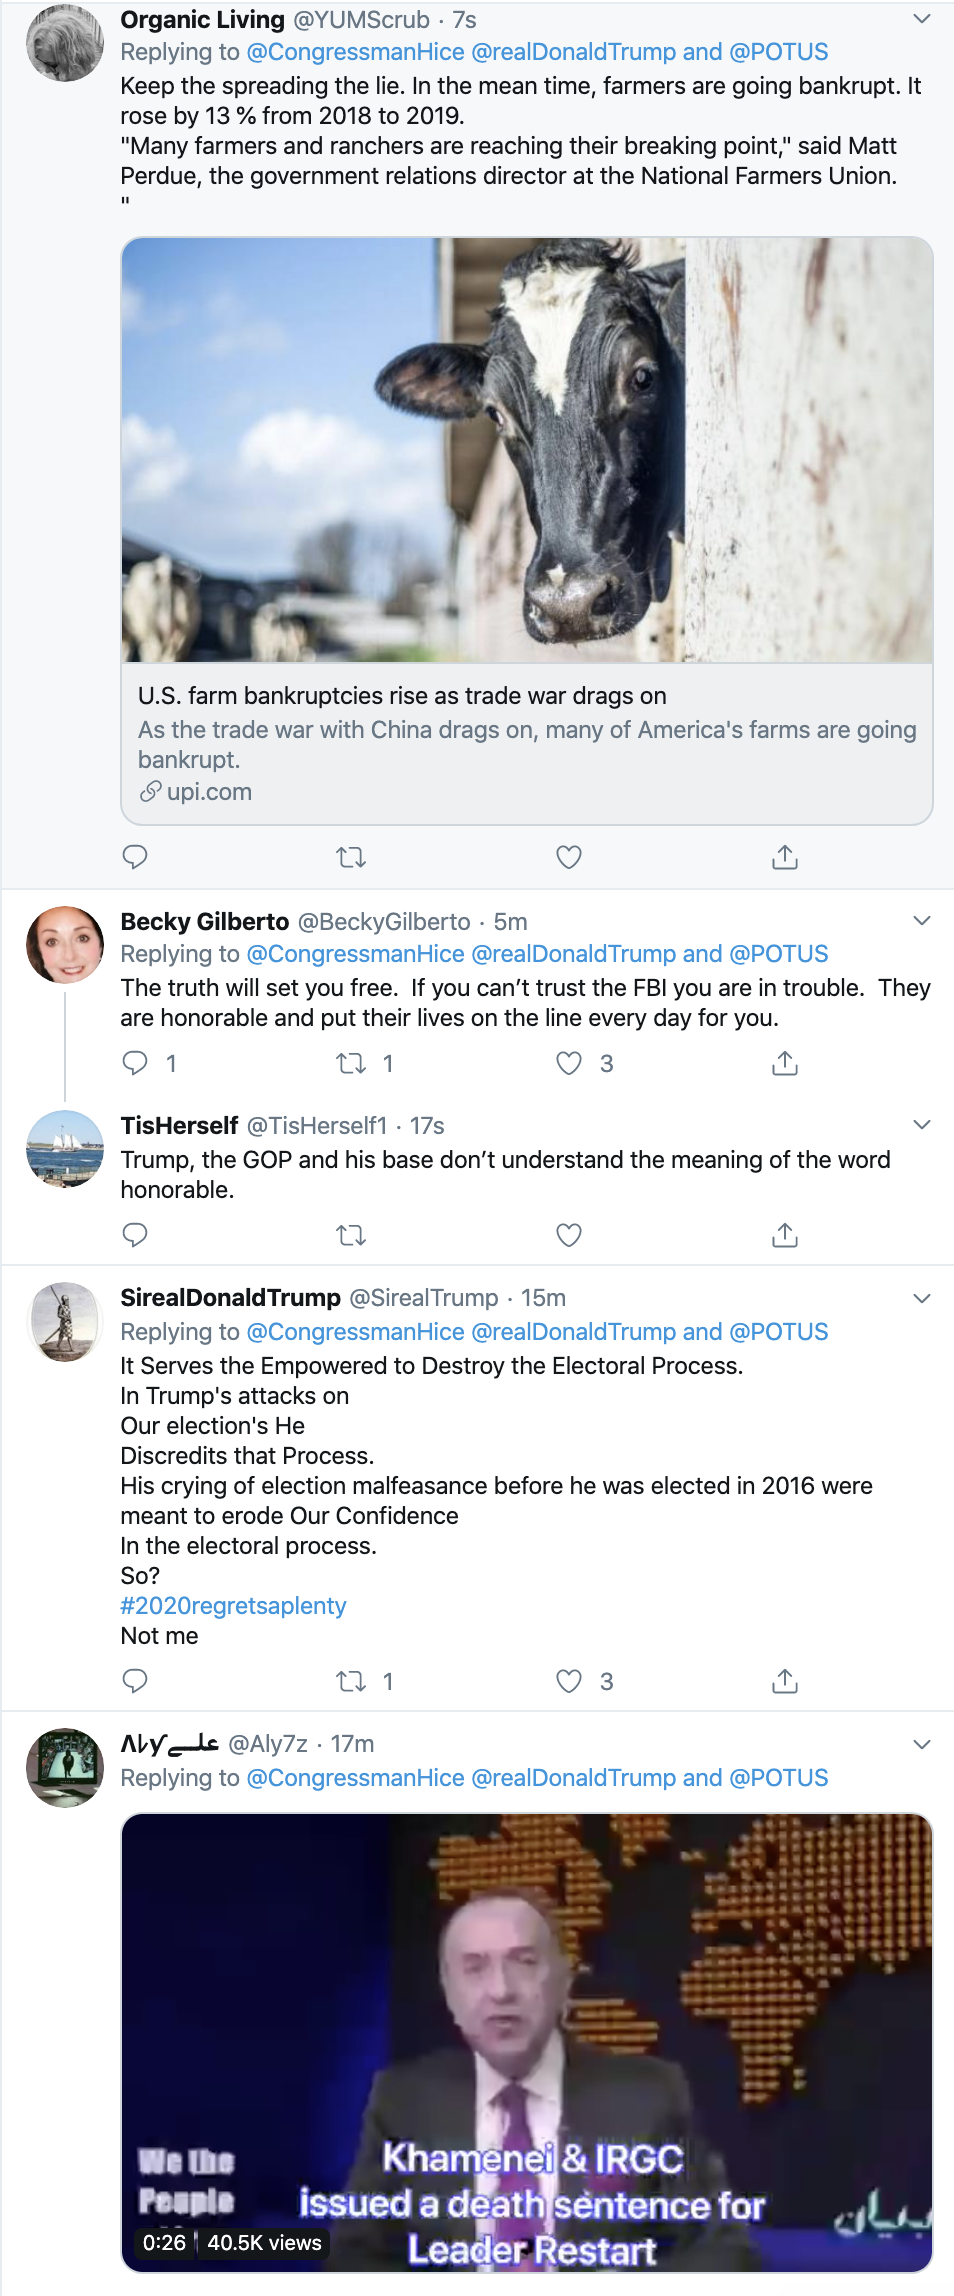 Screen-Shot-2019-12-11-at-7.52.41-AM Trump Tweets 20+ Times During Wednesday Emotional Collapse Corruption Election 2020 Featured Impeachment Top Stories